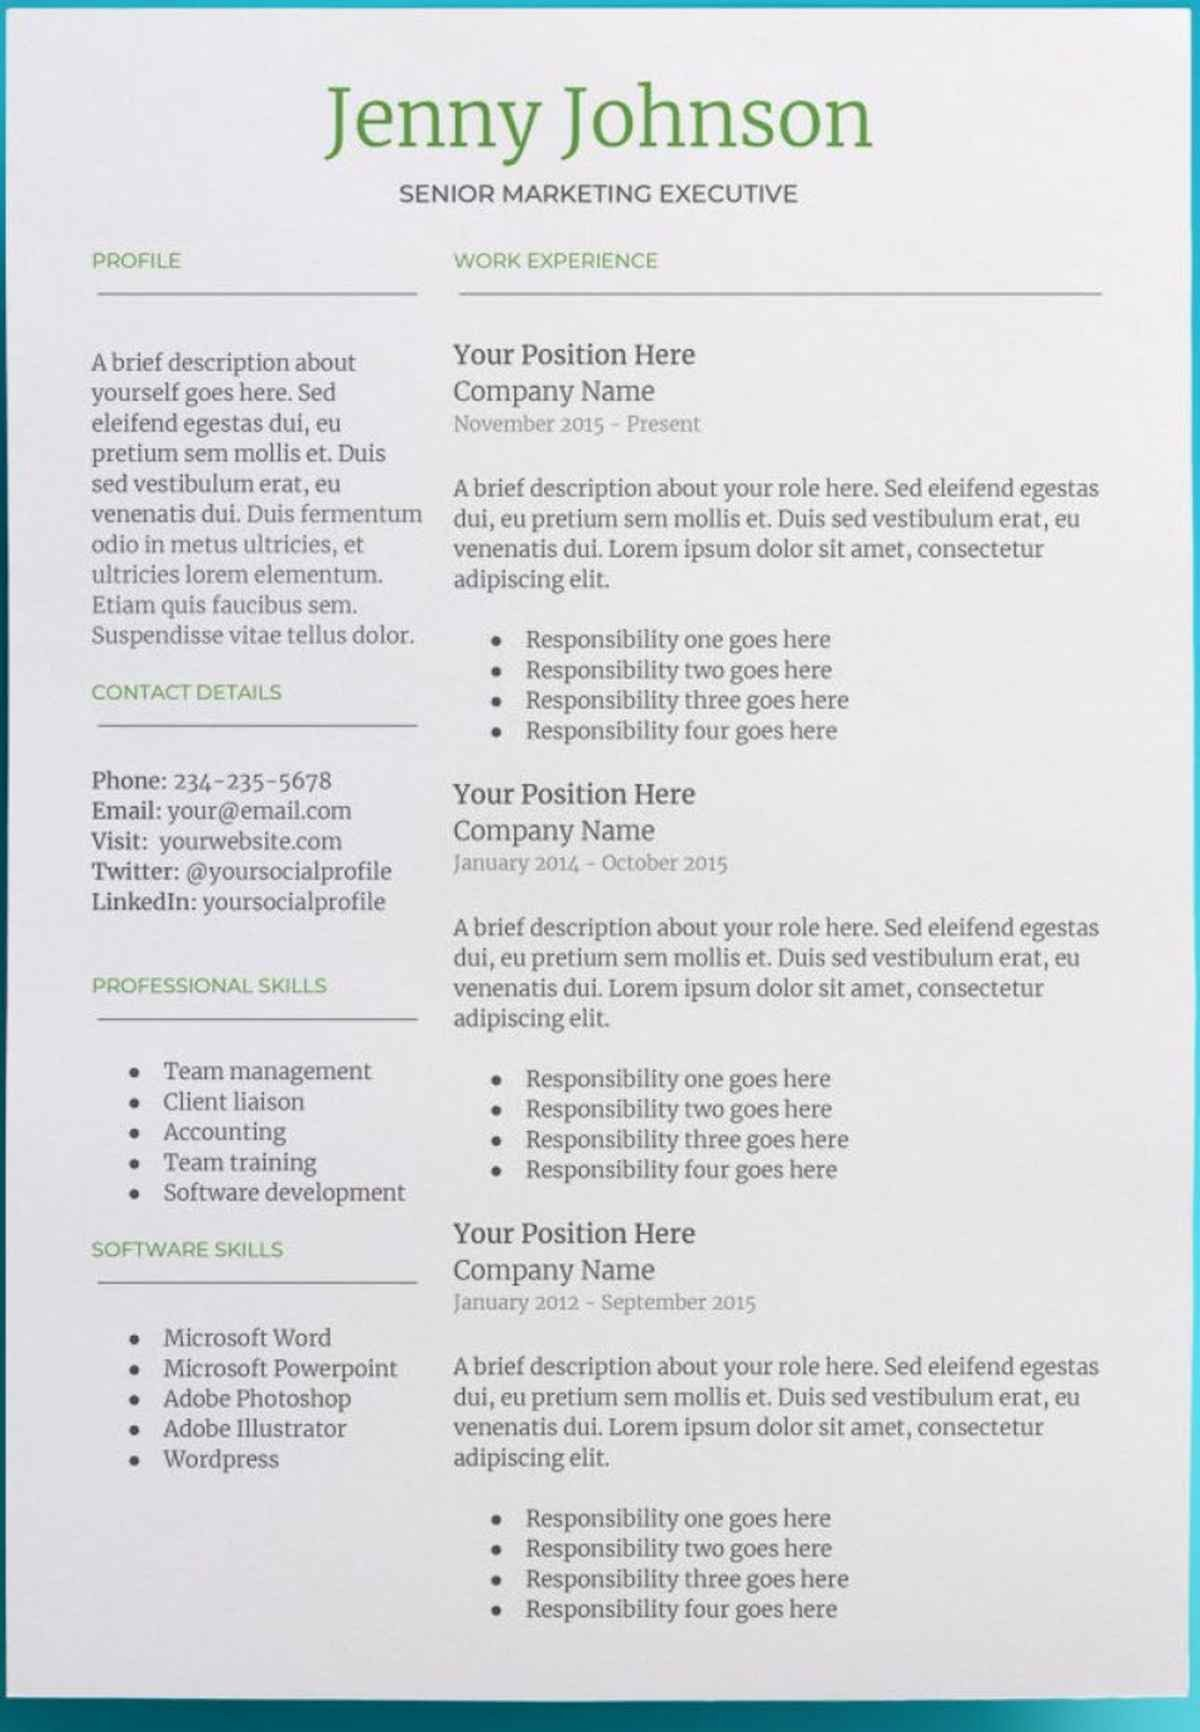 Job Description Template Google Docs New 30 Google Docs Resume Templates [downloadable Pdfs]